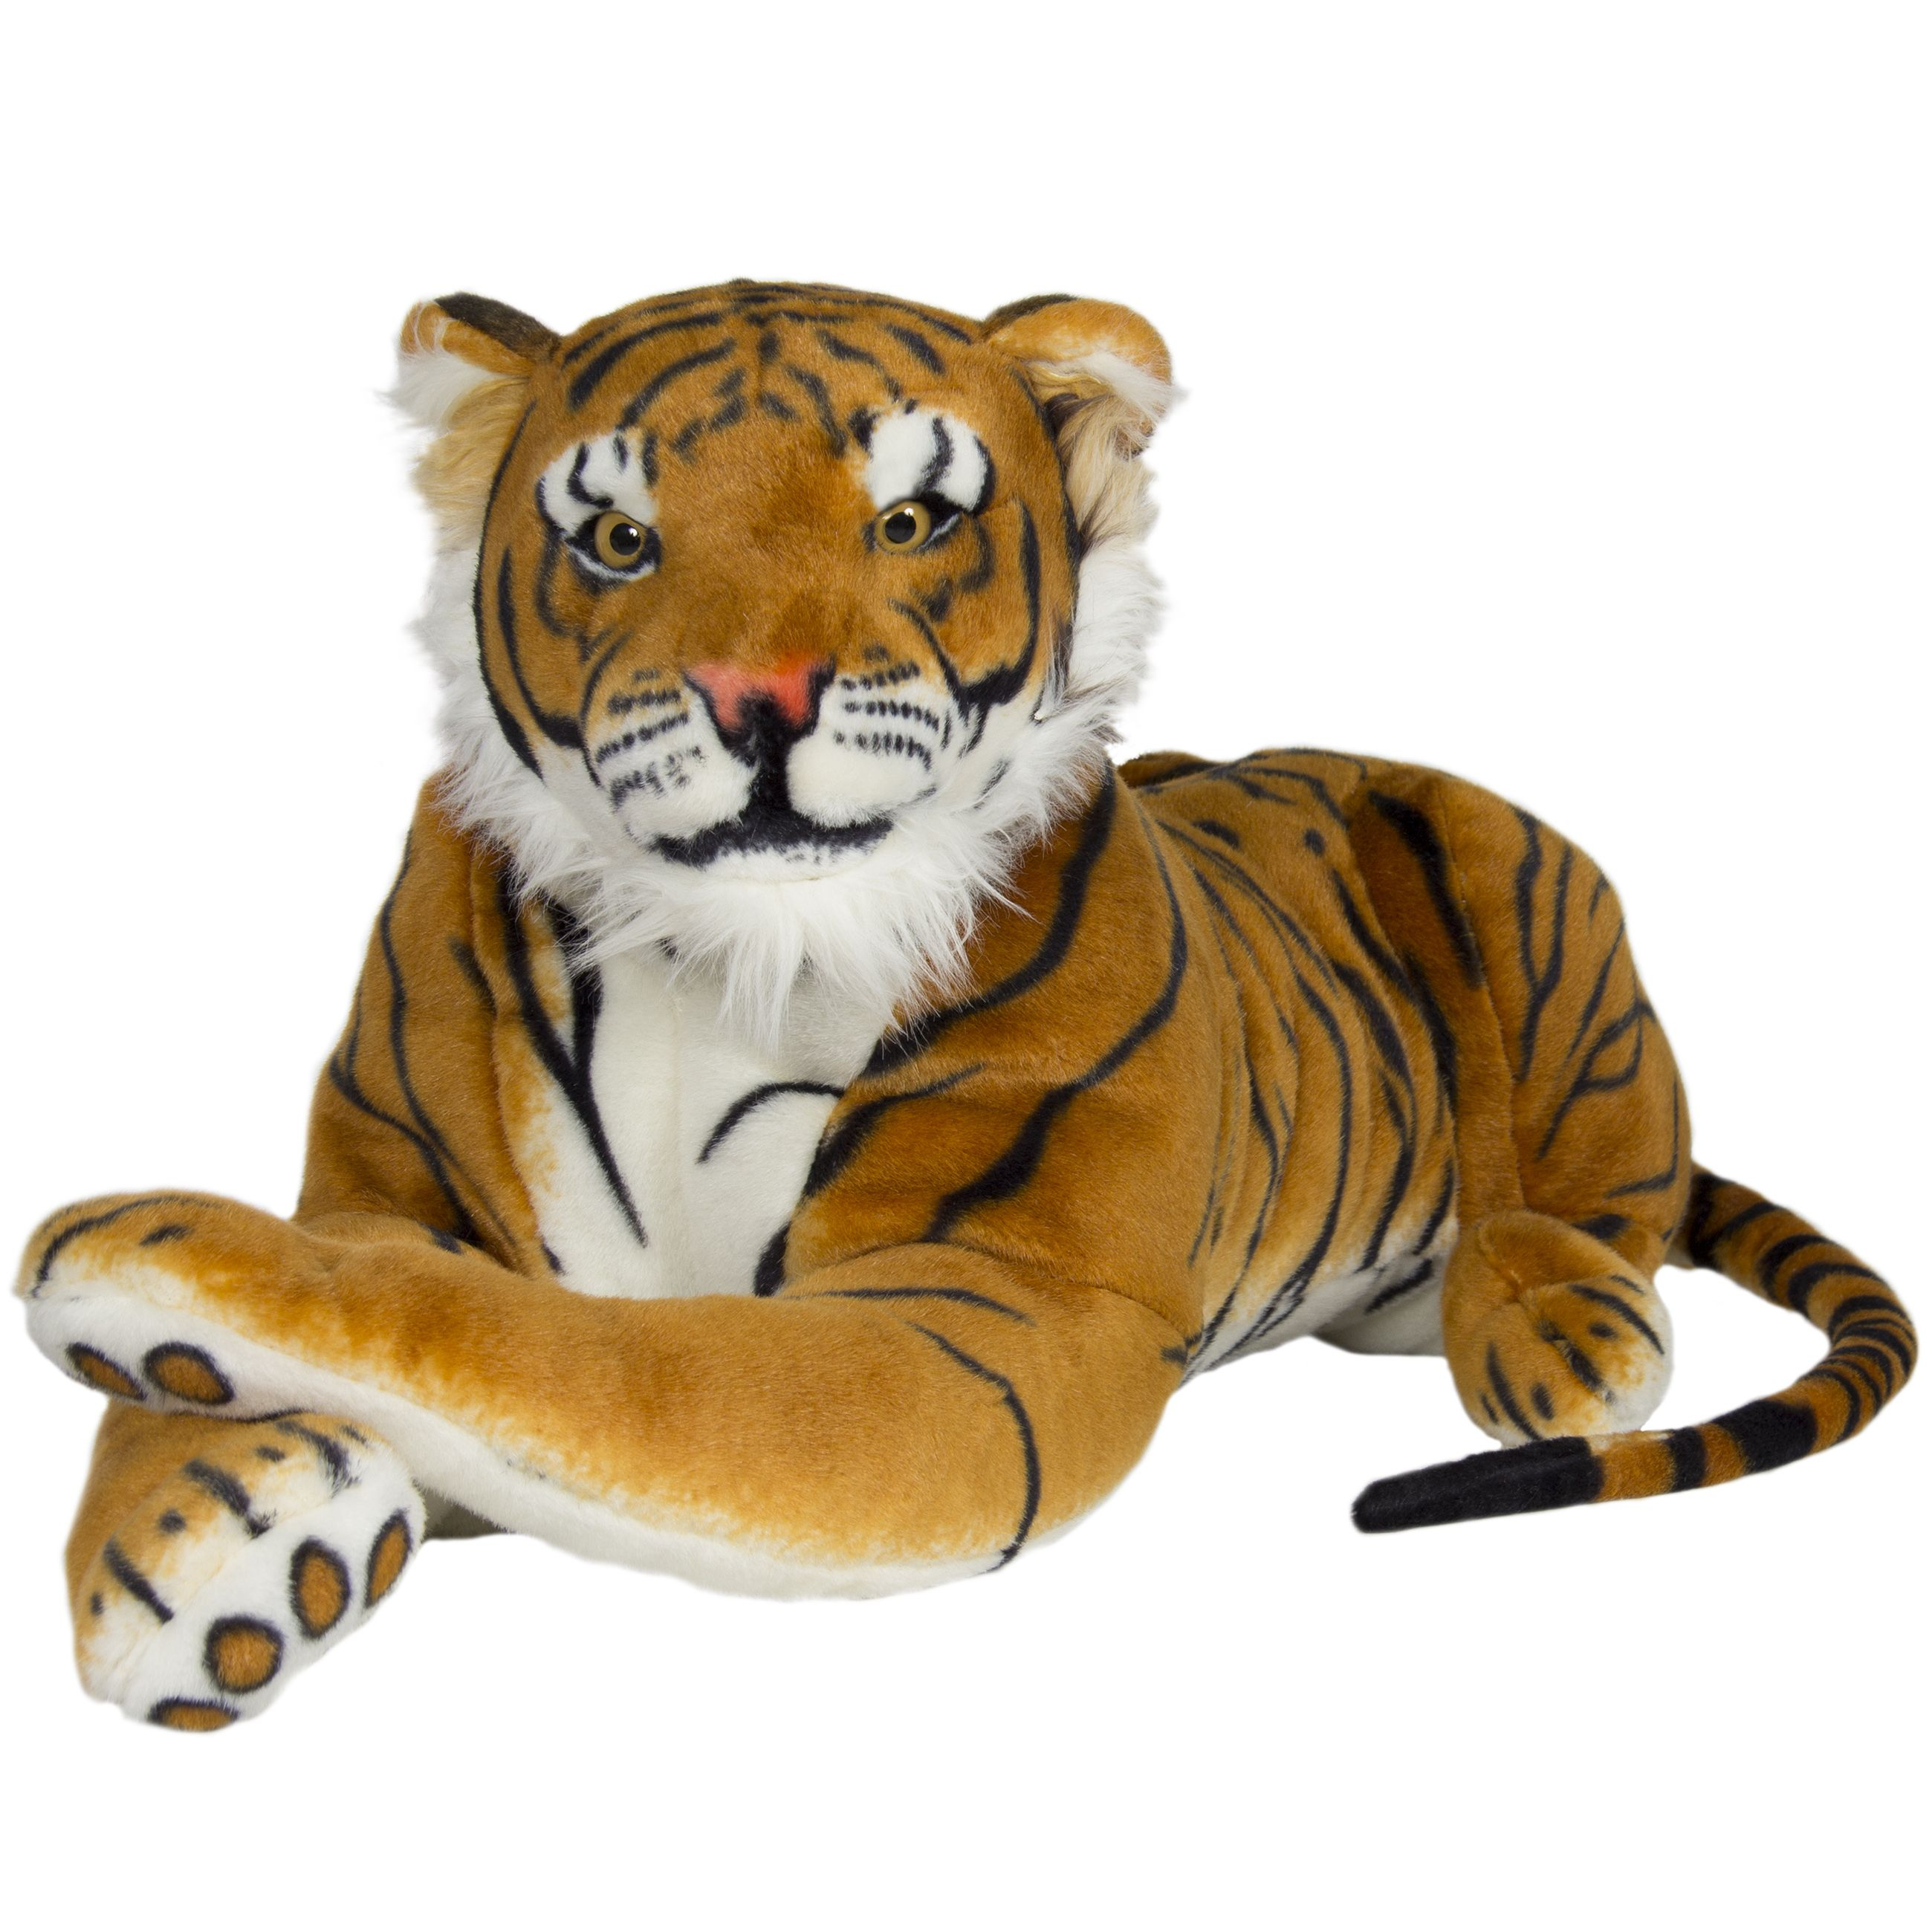 Pin by marketing on Plush Animals Tiger stuffed animal